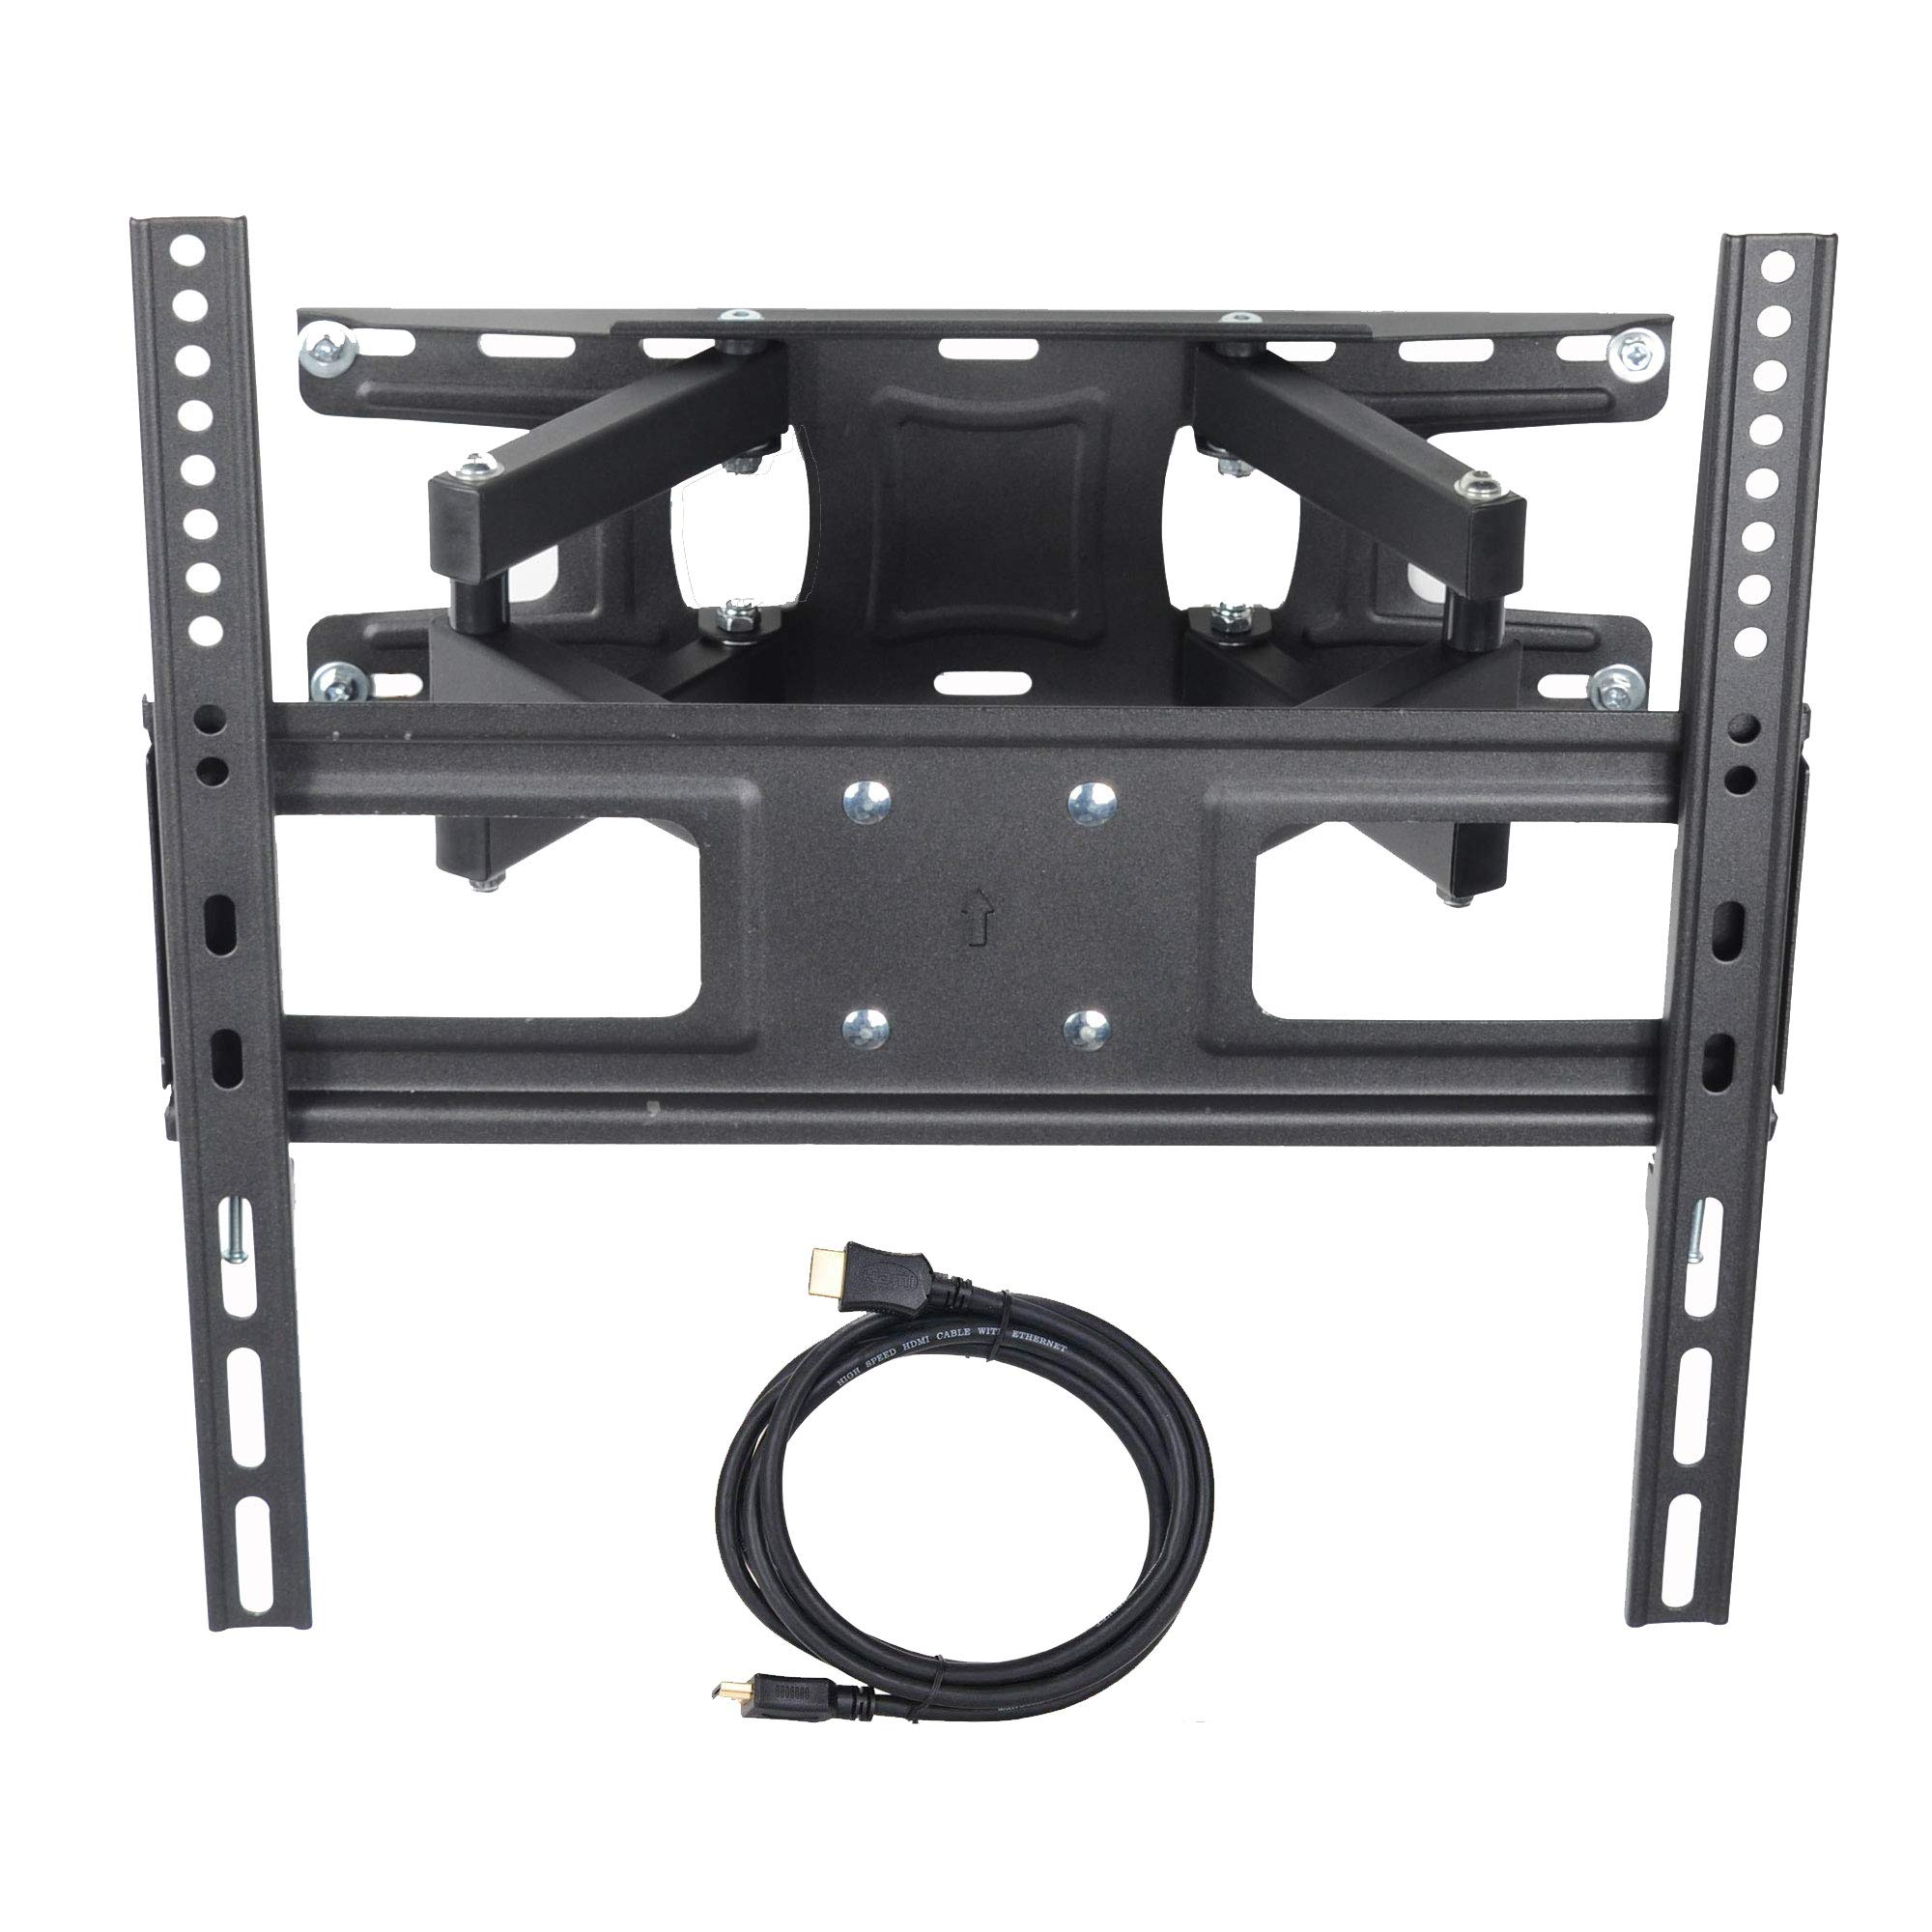 VideoSecu MW340B2 TV Wall Mount Bracket for Most 32-65 Inch LED, LCD, OLED and Plasma Flat Screen TV, with Full Motion Tilt Swivel Articulating Dual Arms 14'' Extend, up to VESA 400x400mm,100 LBS WR9 by VideoSecu